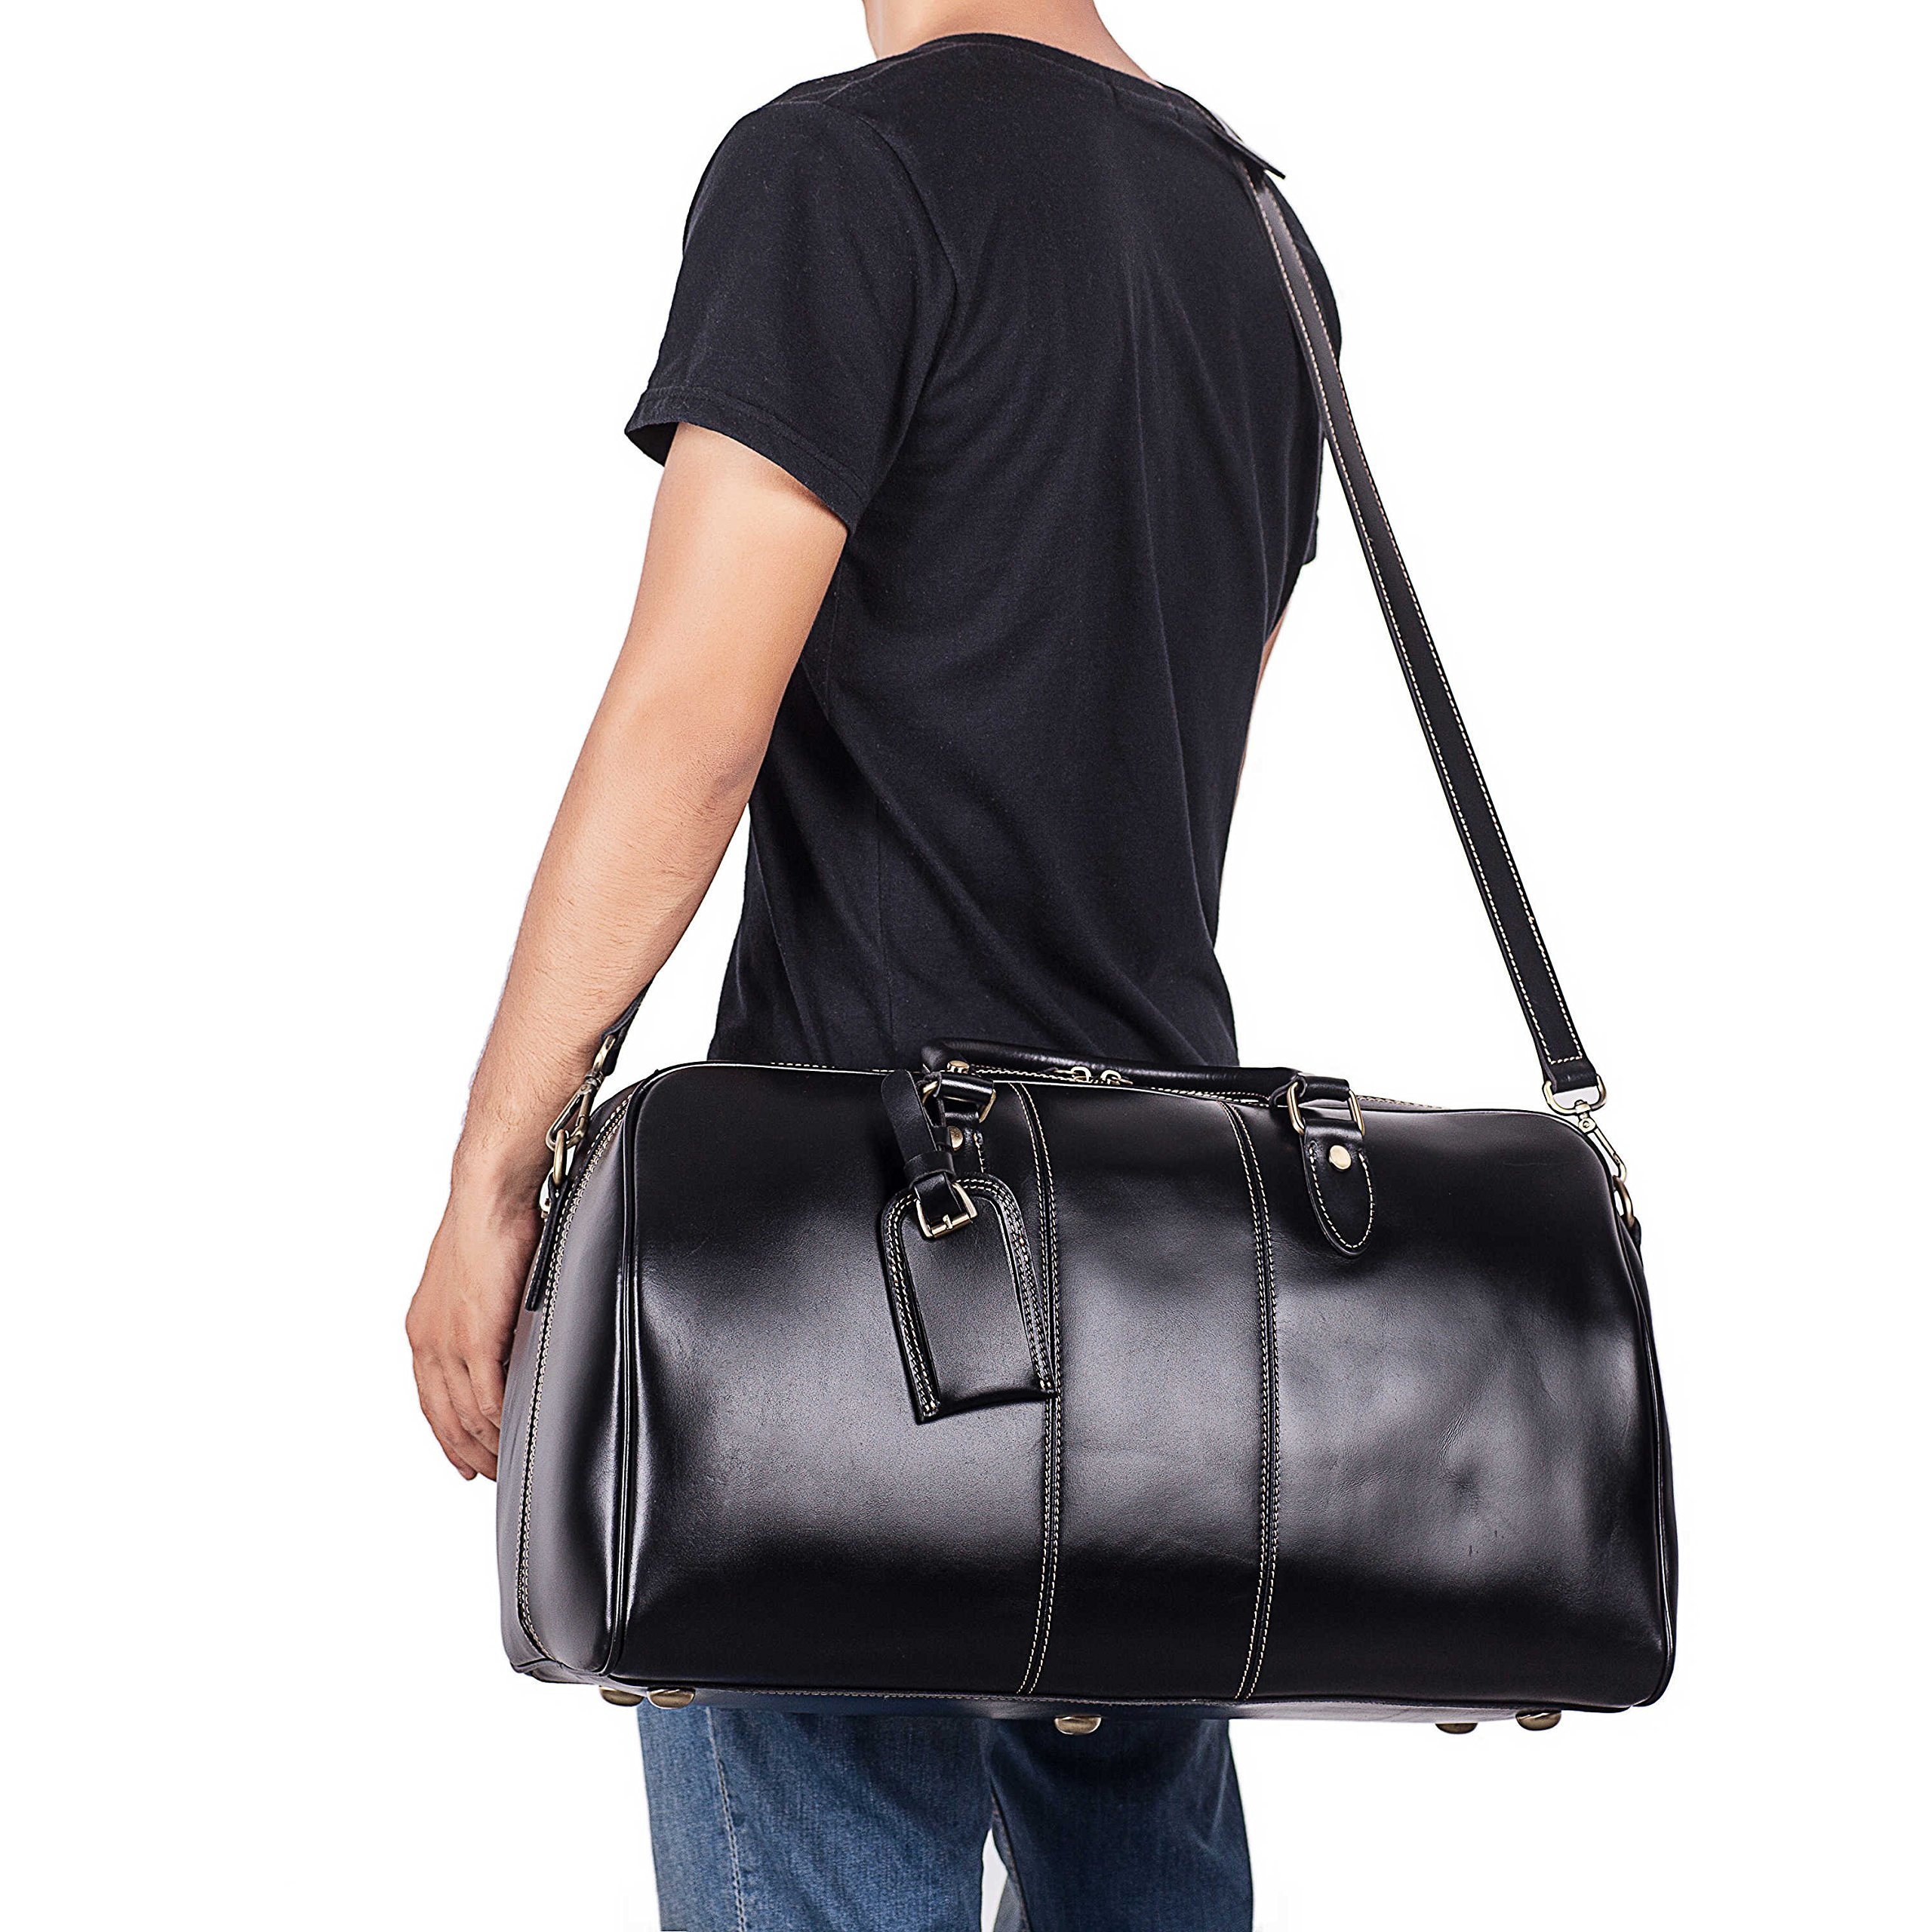 Leather Duffel Bag Travel Overnight Gym Sports Weekender Tote Bags Black by Kissloves (Image #4)